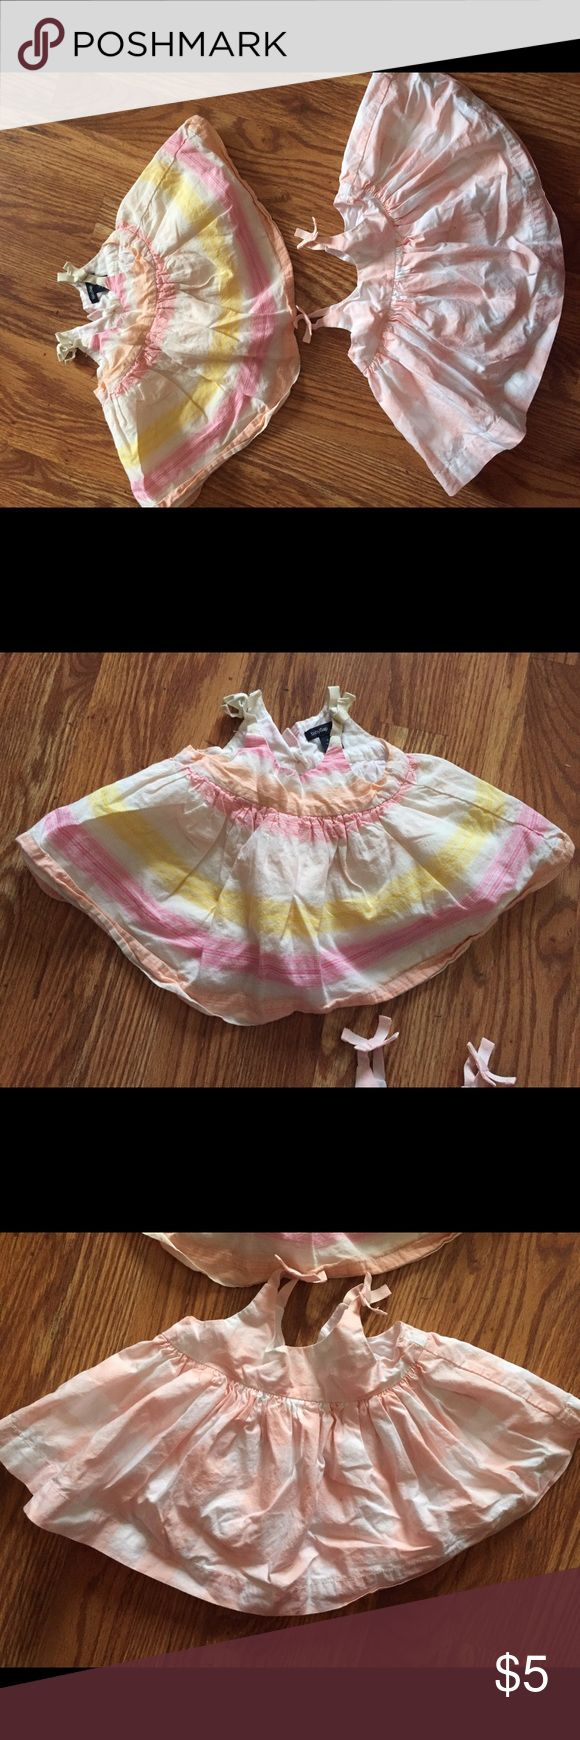 0 3 month summer dresses casual